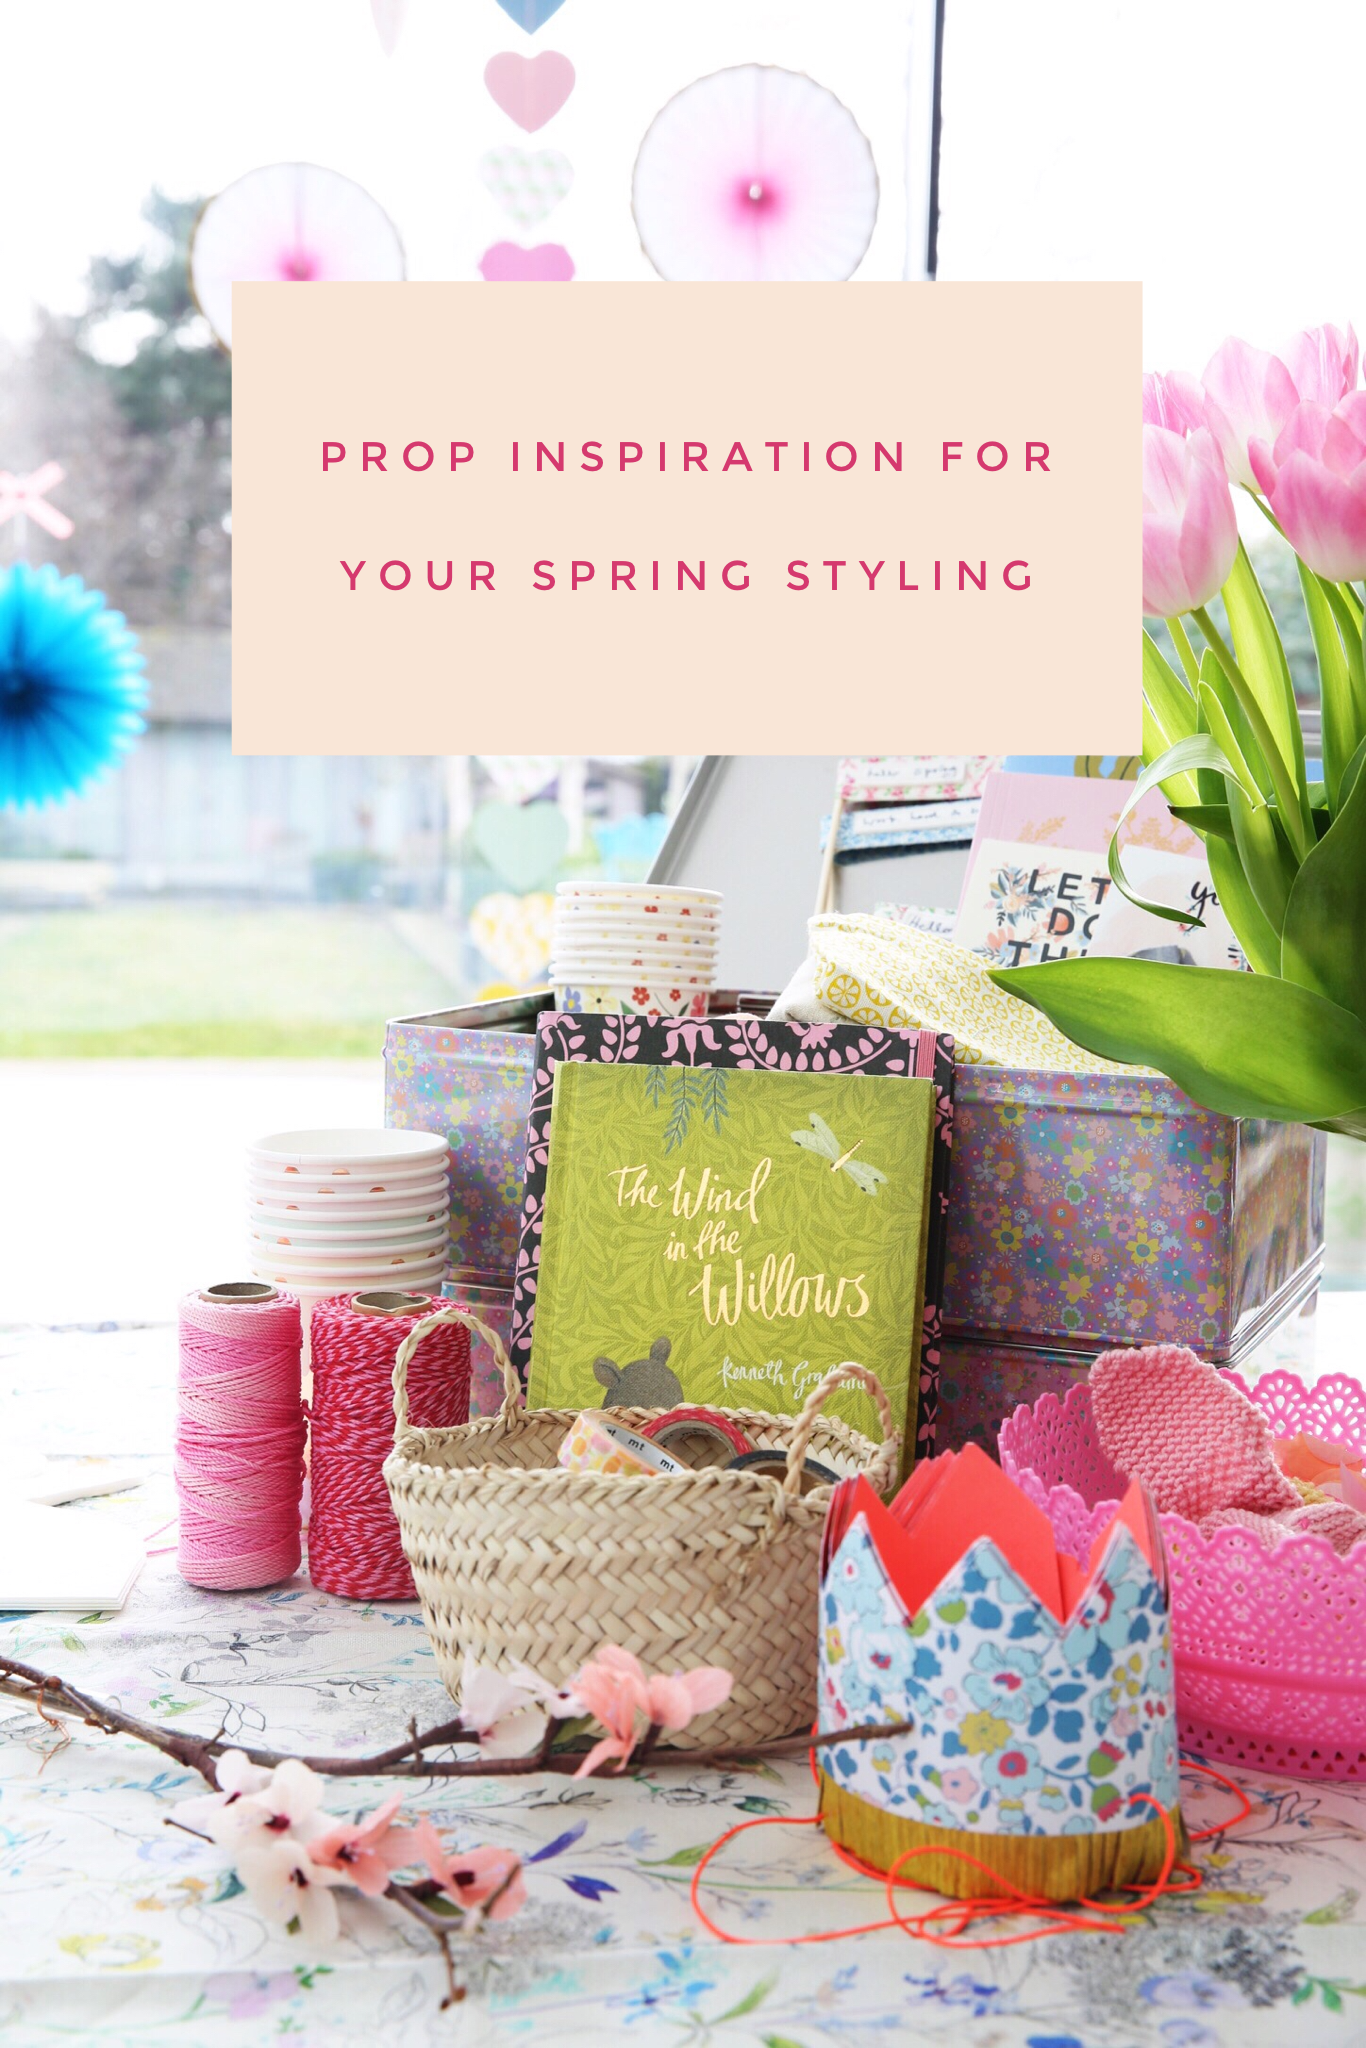 A collection of props and sources for your Spring styling